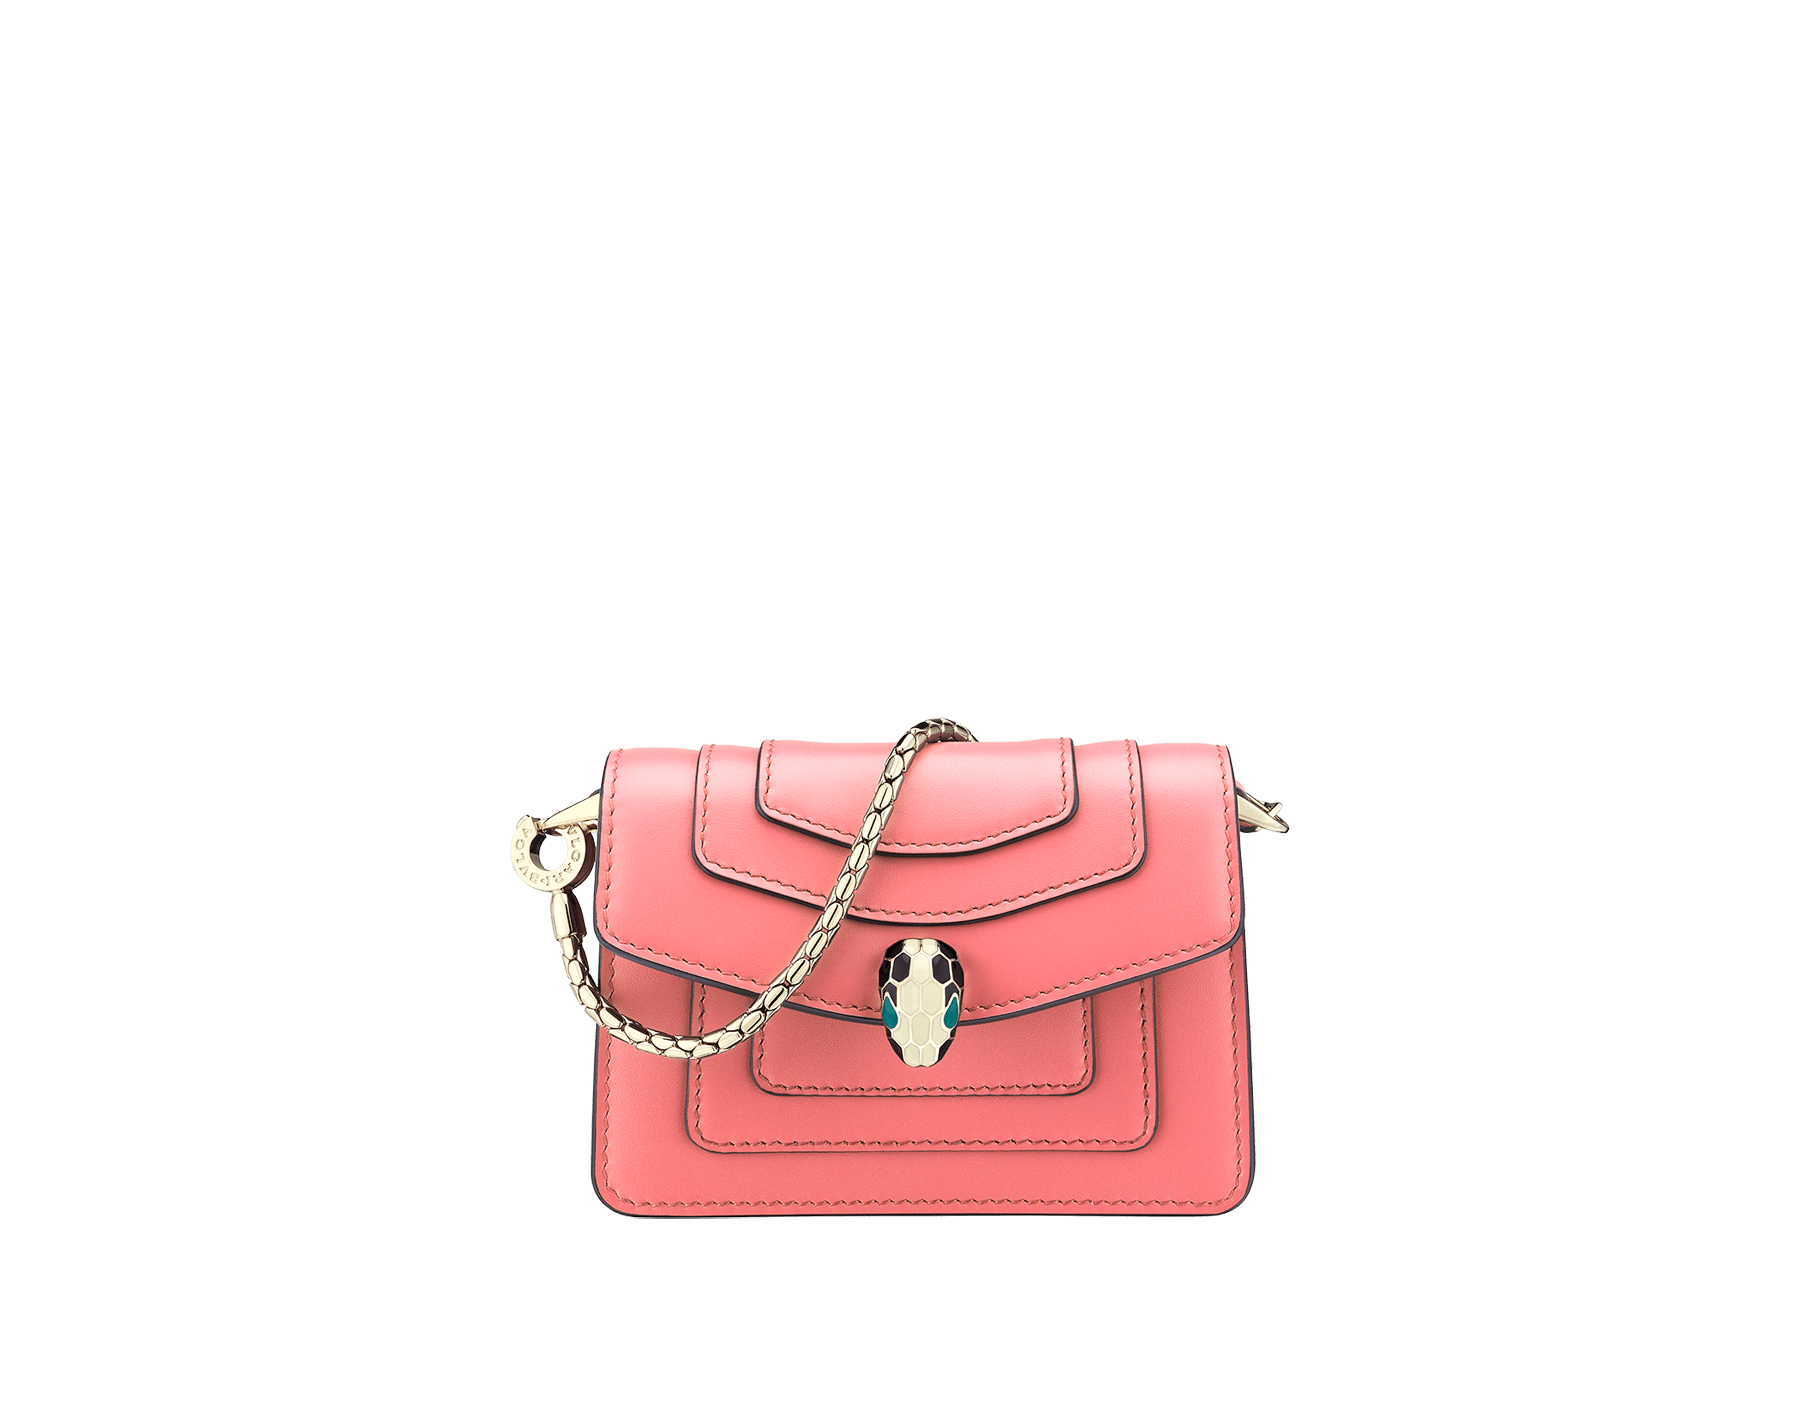 Bag charm Serpenti Forever miniature in silky coral and flamingo quartz nappa lining. Iconic brass light gold plated snakehead stud closure enameled in black and white agate and finished with green enamel eyes. 289256 image 1